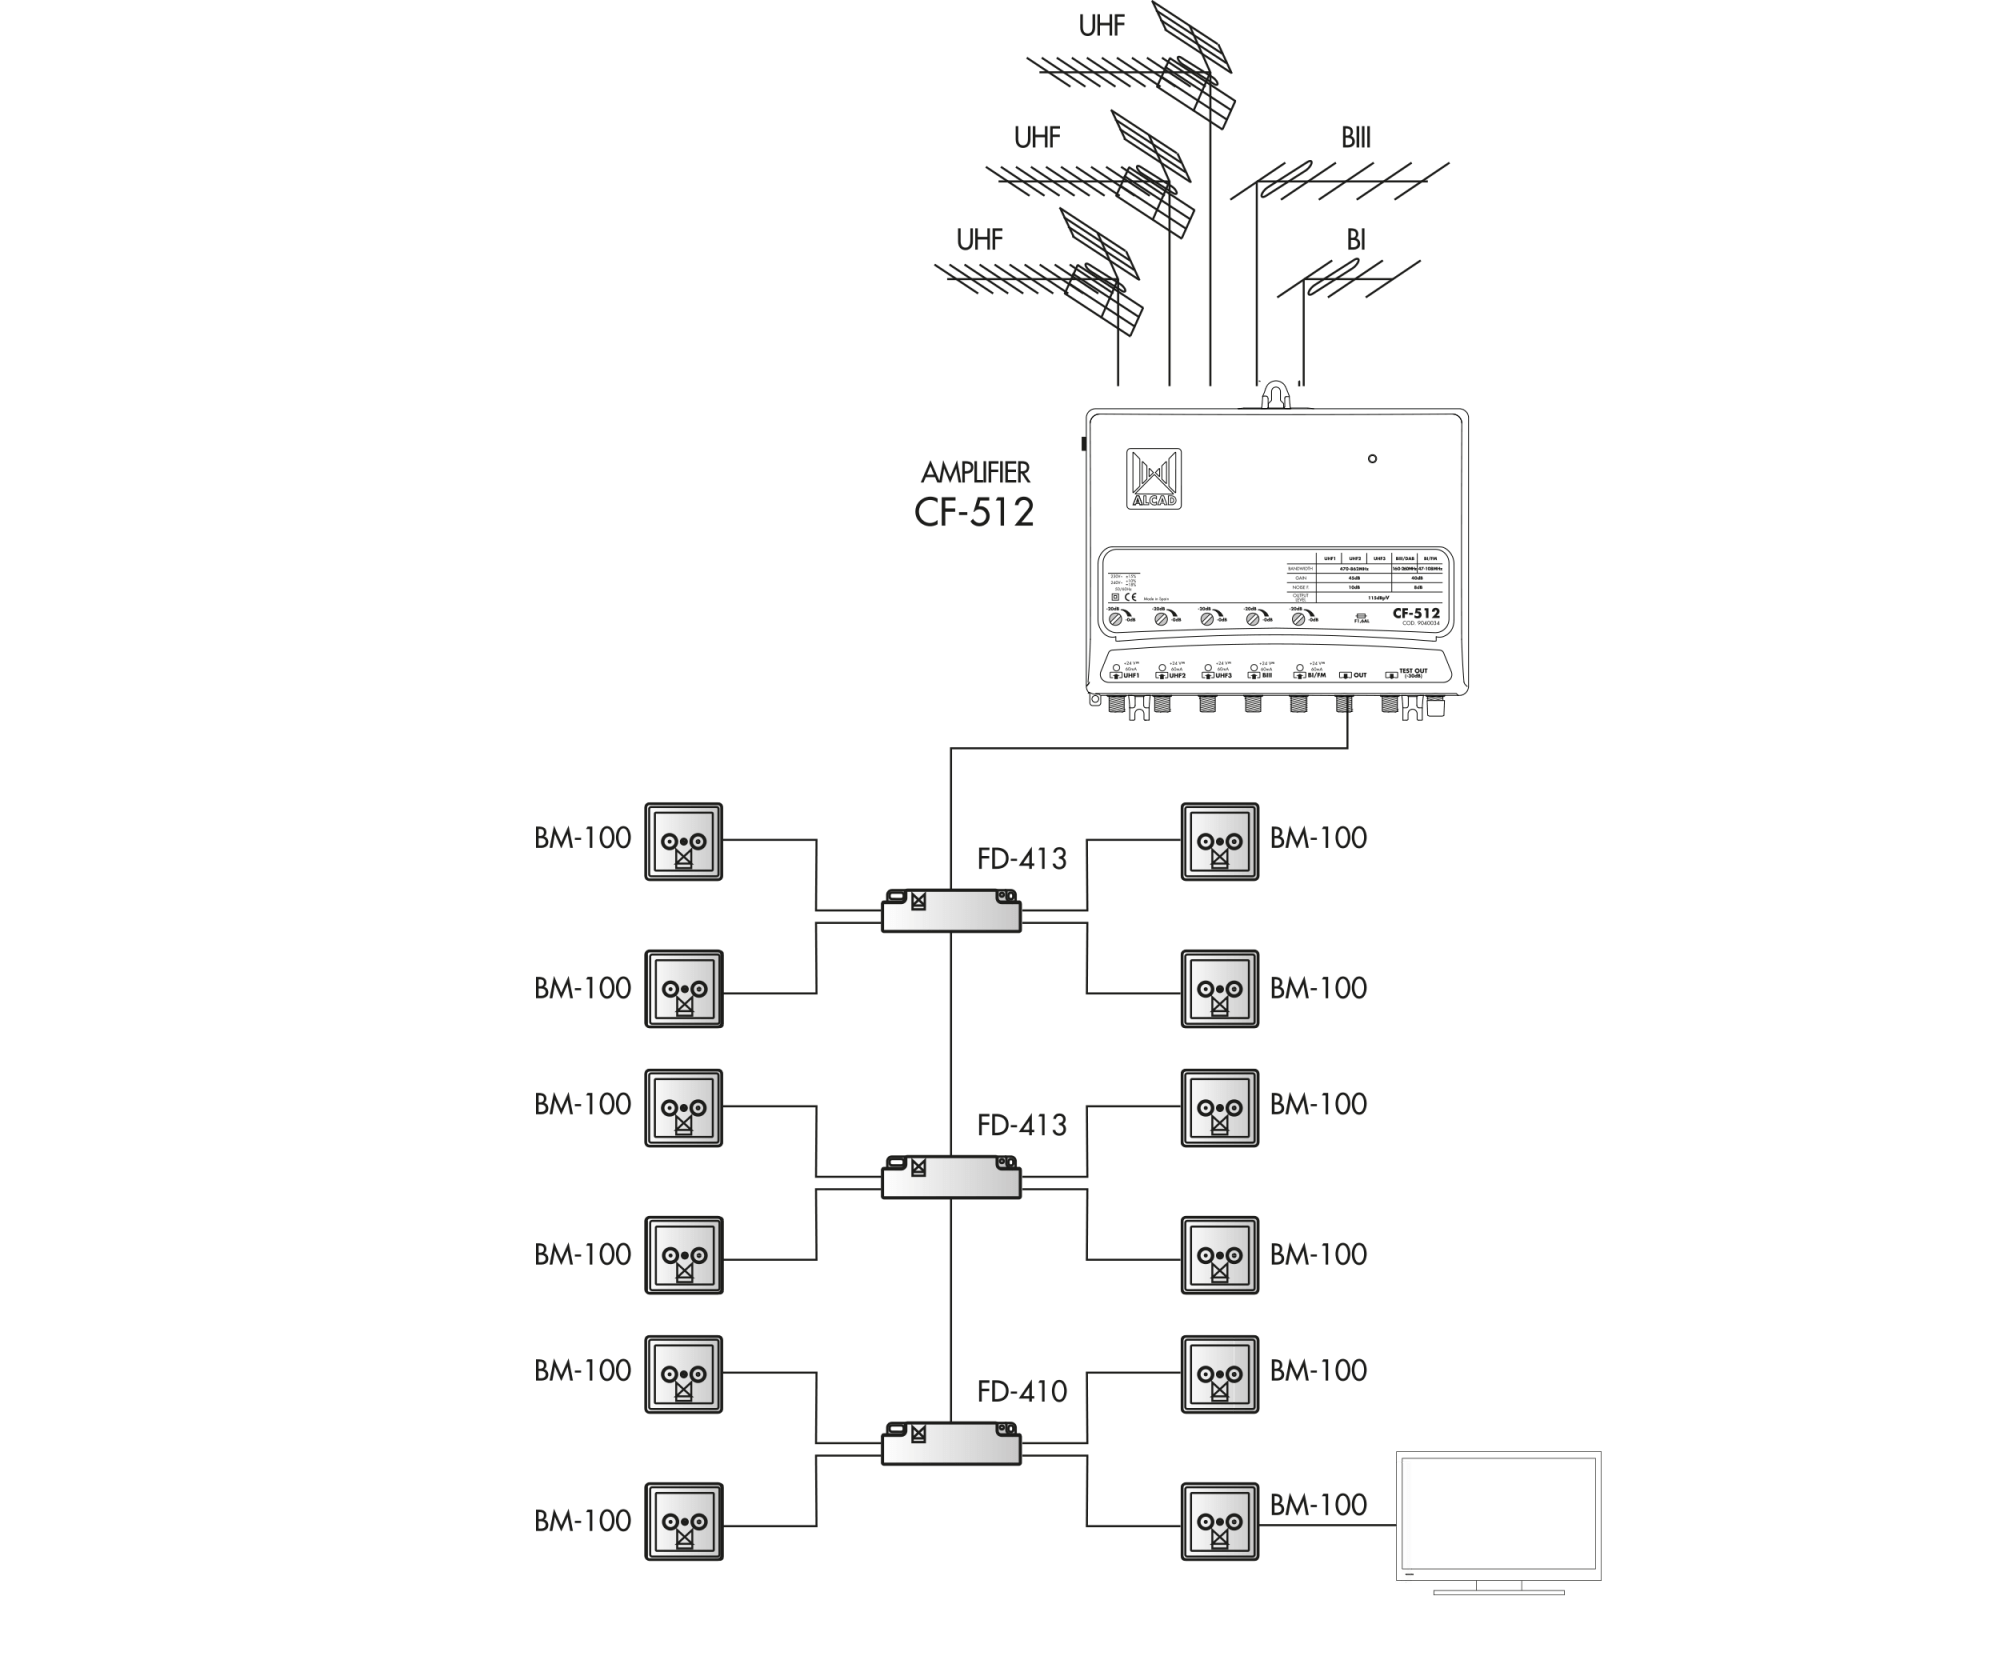 hight resolution of the distribution takes place in a tree pattern using splitters this type of distribution allows the signal levels to be balanced across all installations